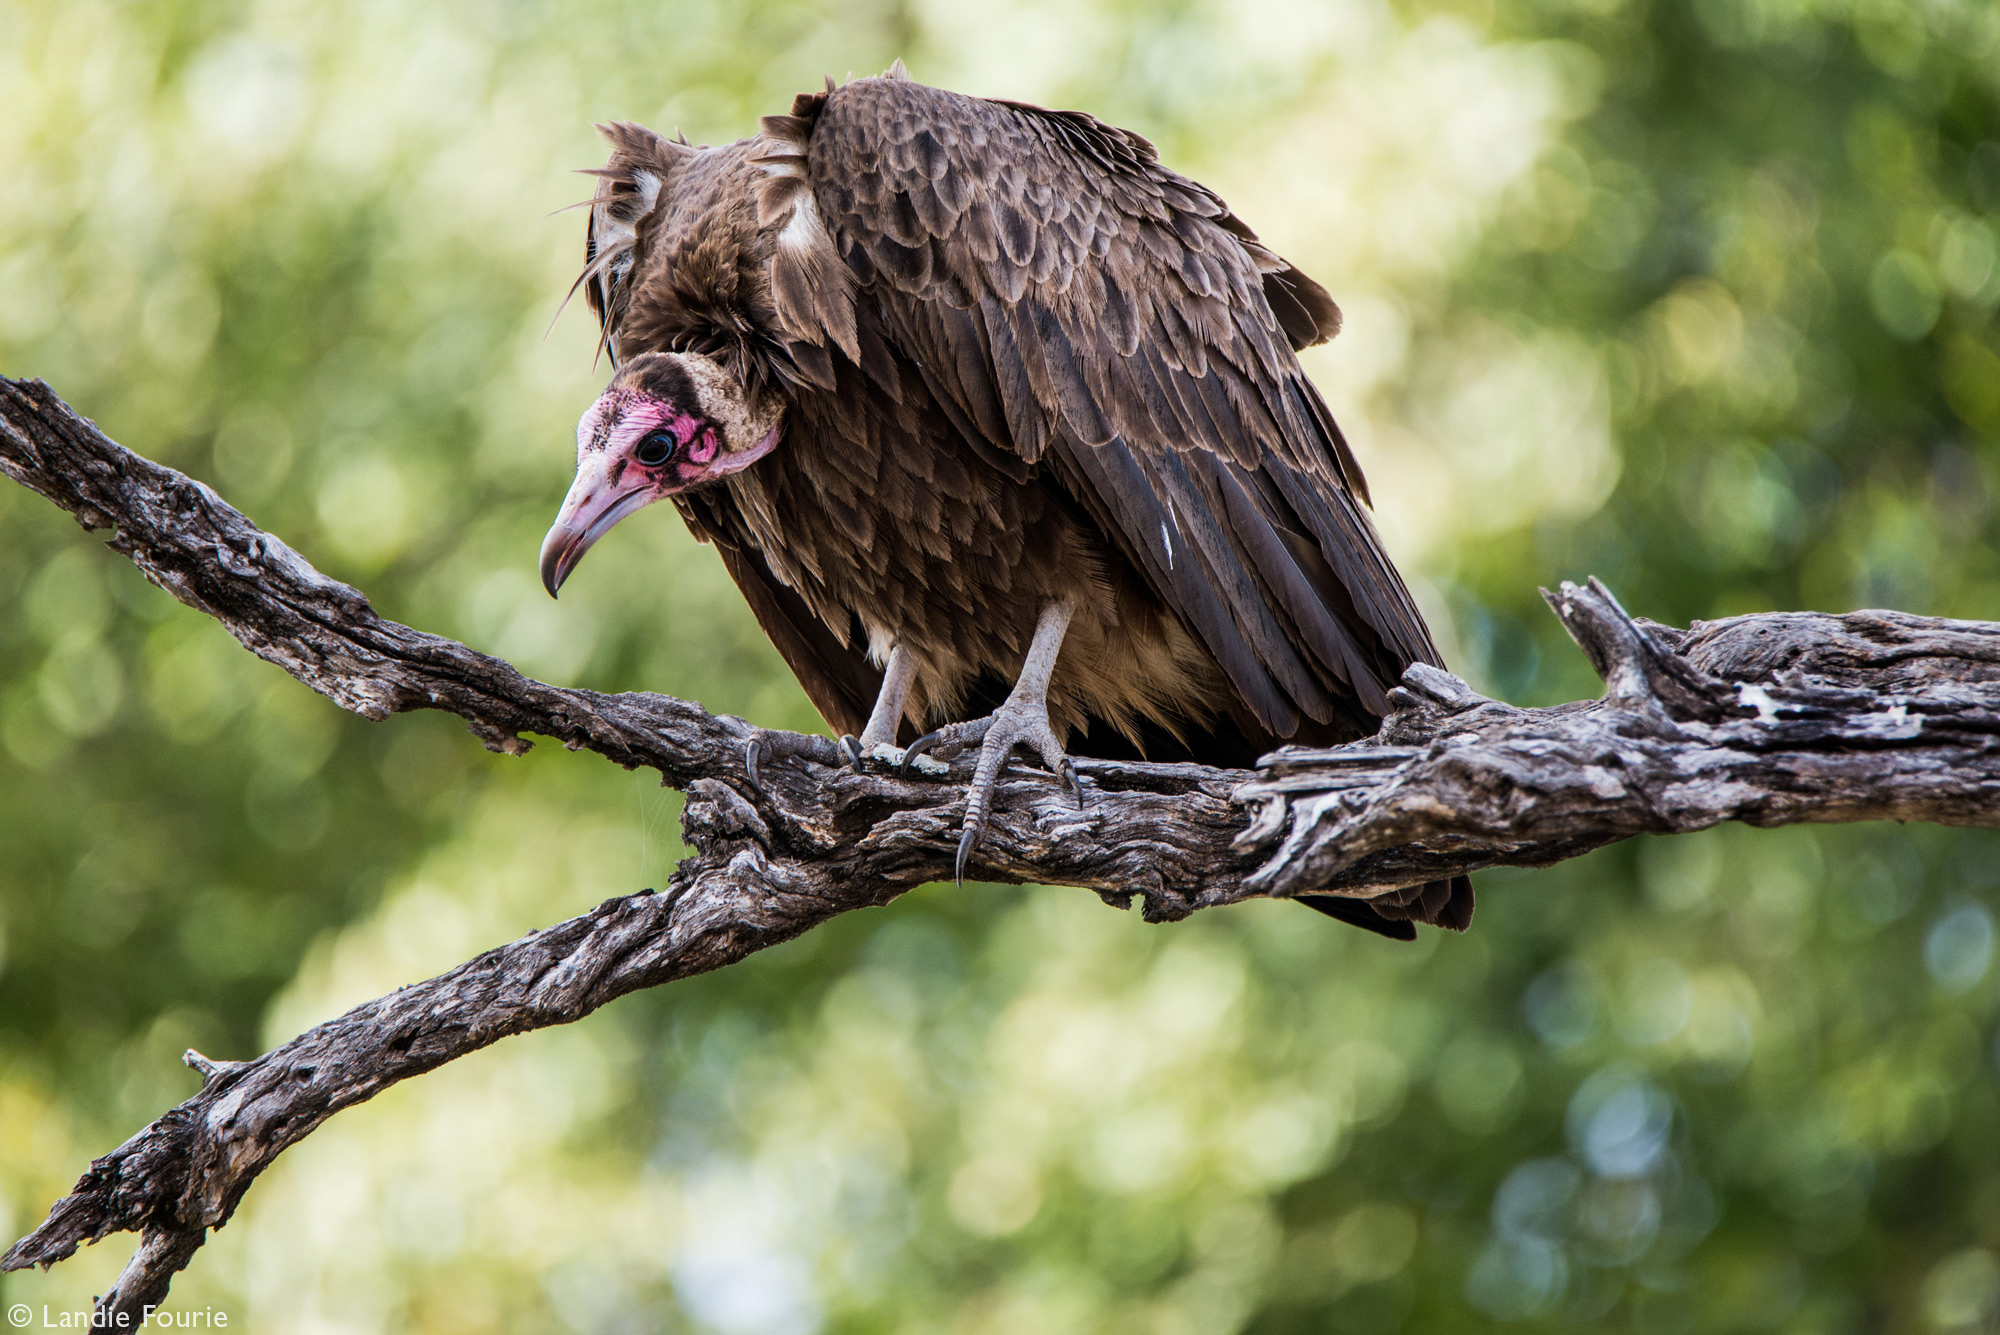 A hooded vulture looks down at a carcass from a high vantage point, Kruger National Park